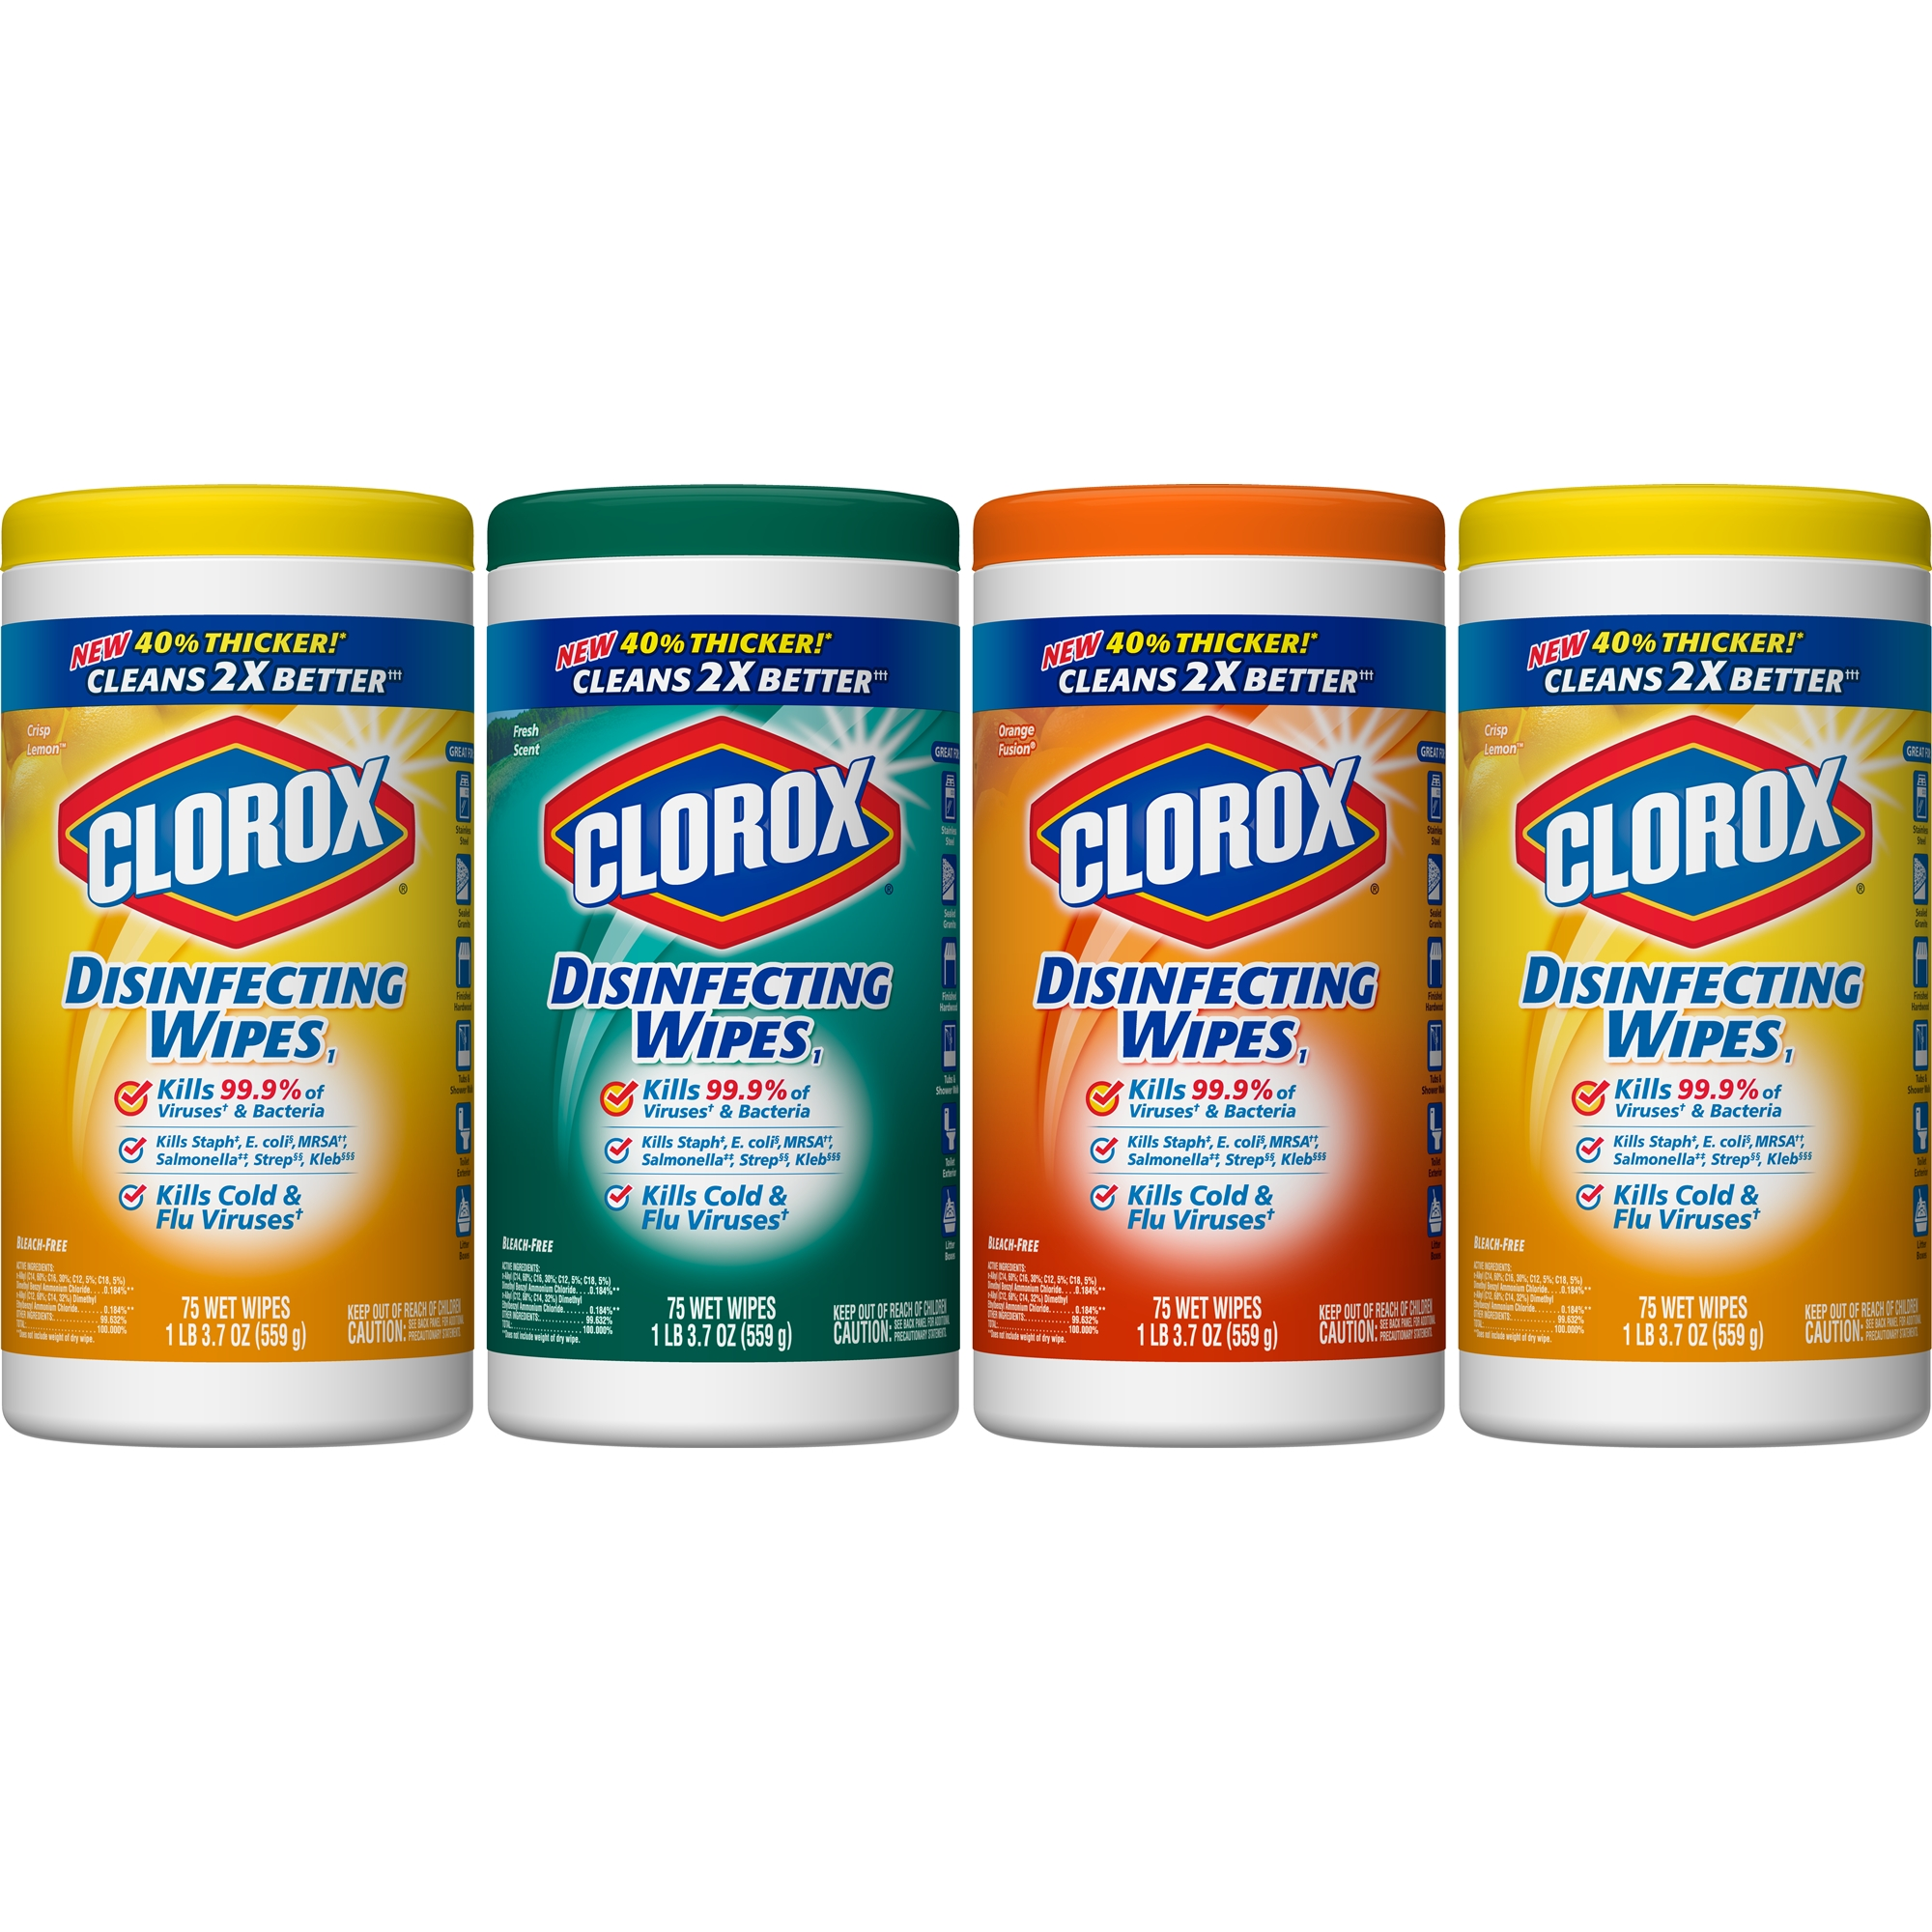 Clorox Disinfecting Cleaning Wipes Value Pack, Crisp Lemon Scent, Fresh Scent and Orange Fusion Scent, 75 Wipes, 4 ct